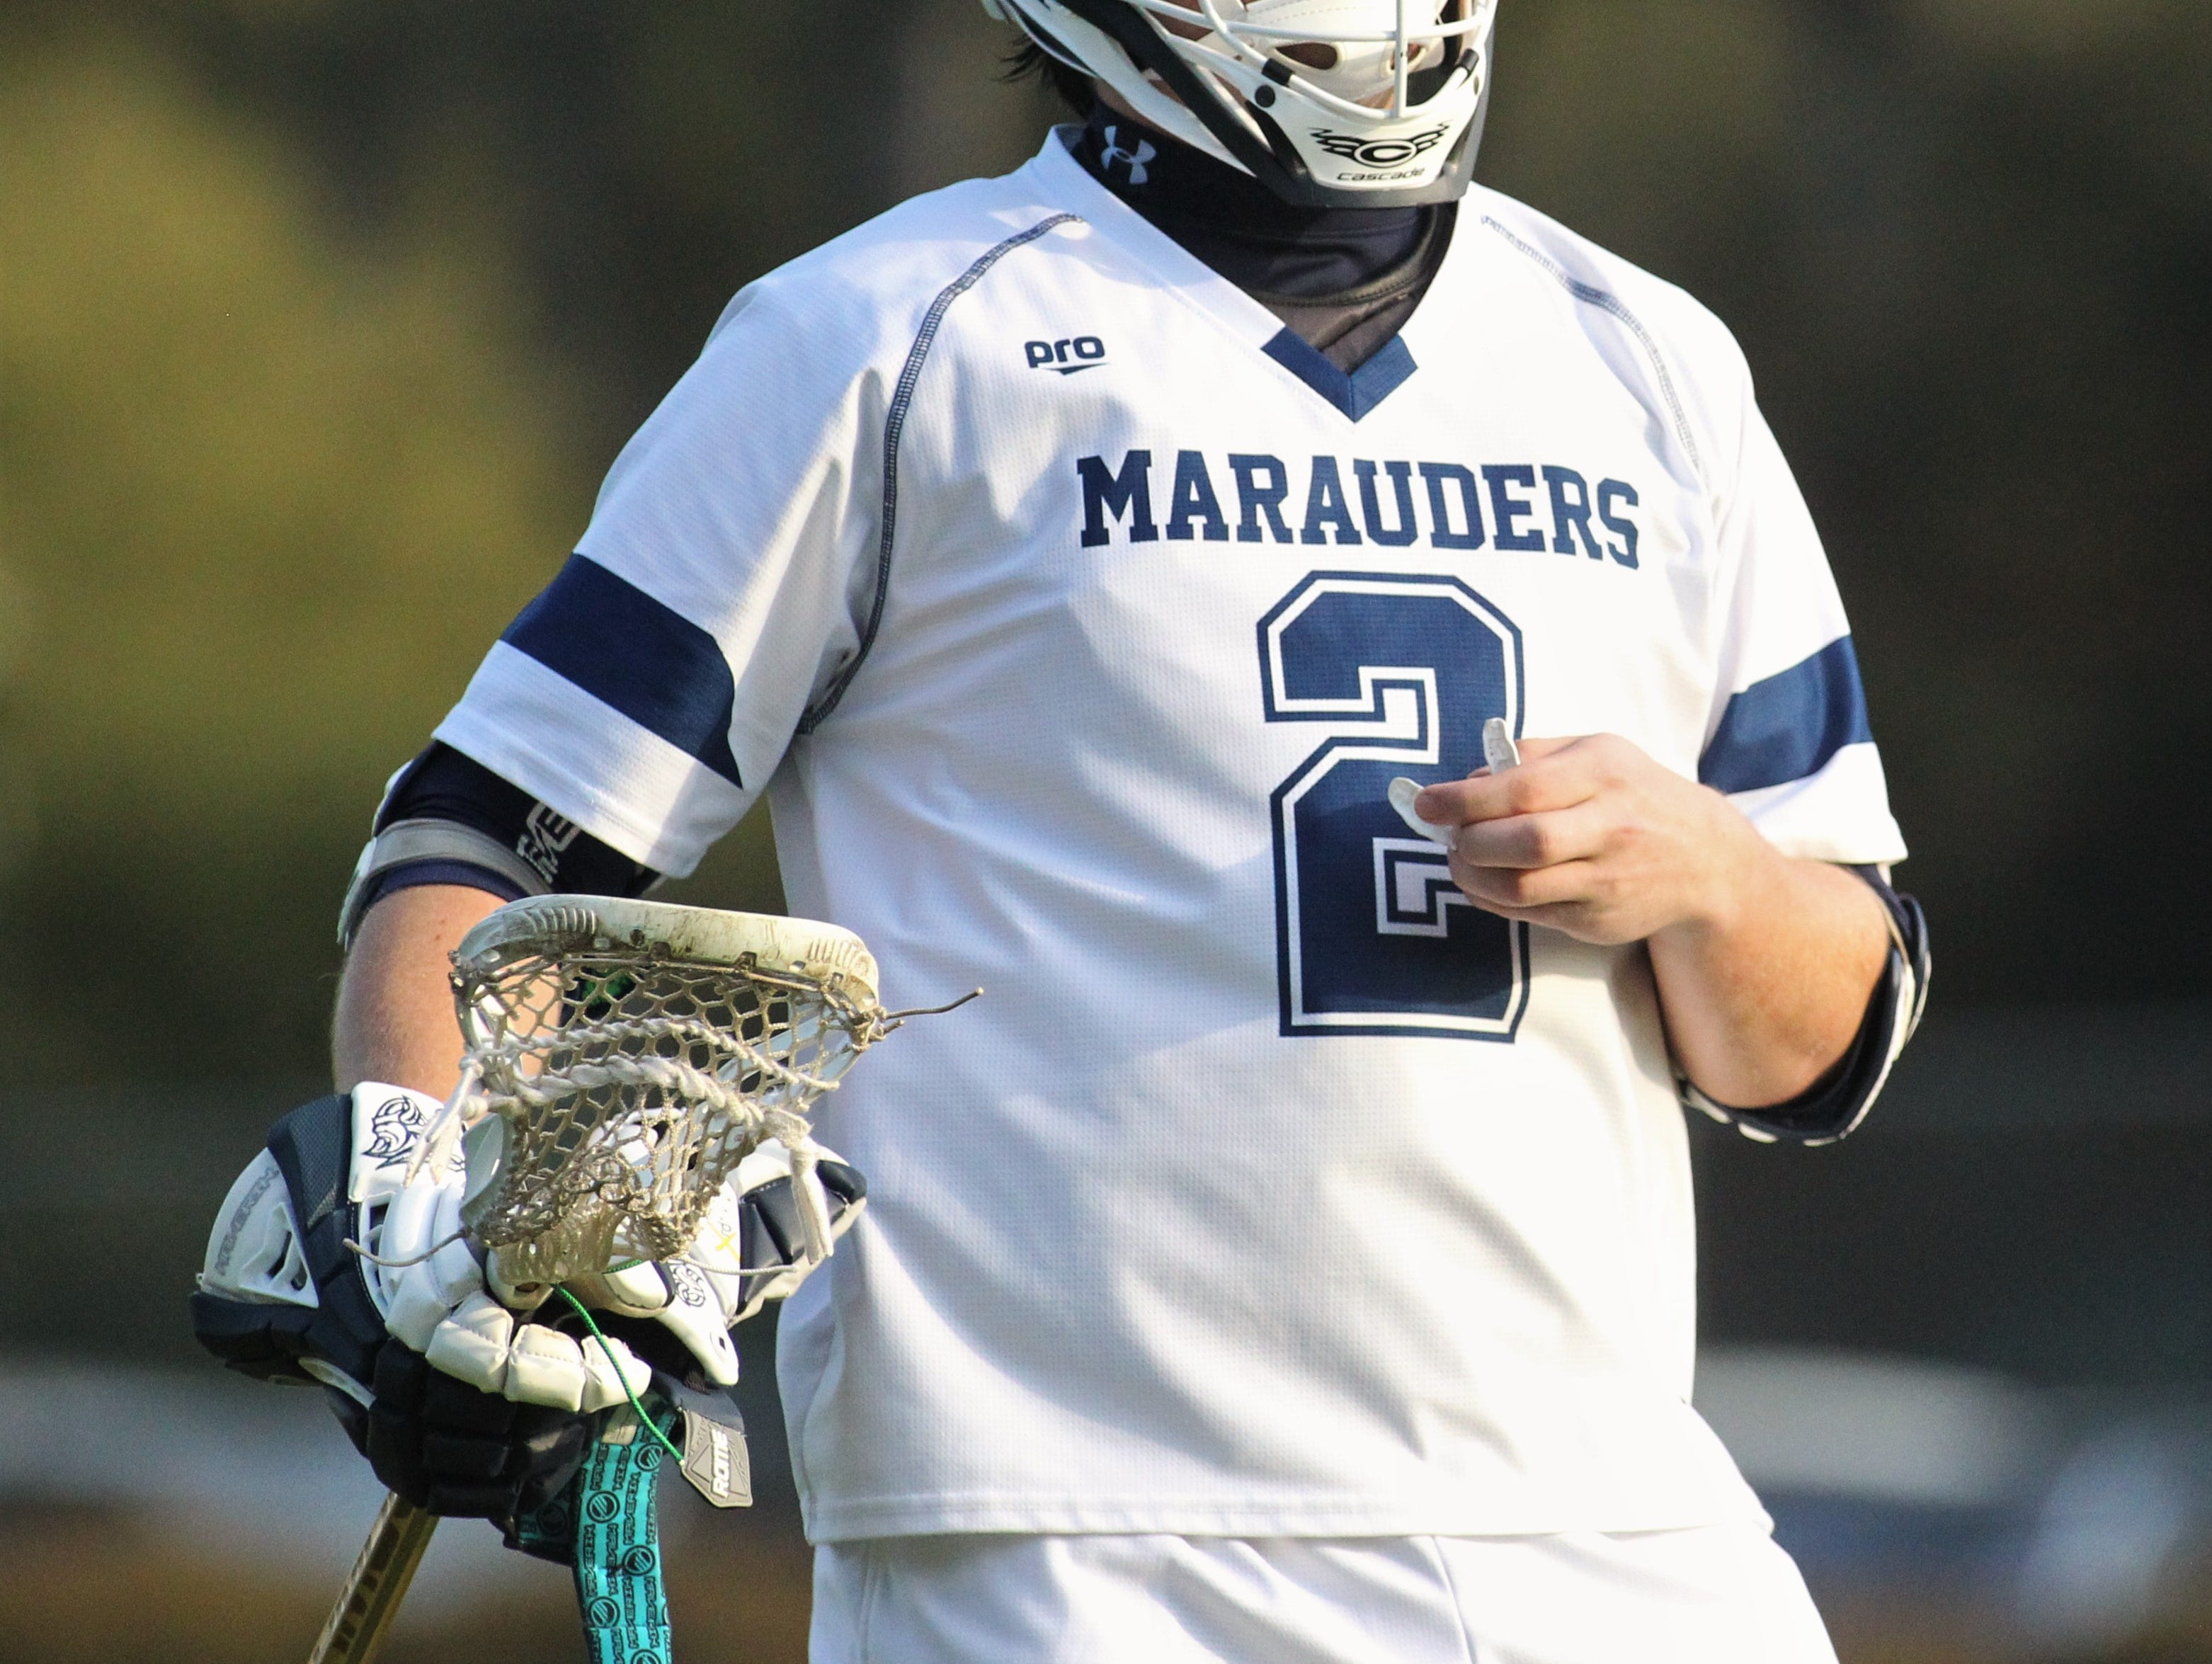 Maclay junior Sam Chase after scoring a goal as the Marauders' lacrosse team beat Leon 15-5 on their annual Military Appreciation Night on March 12, 2019.